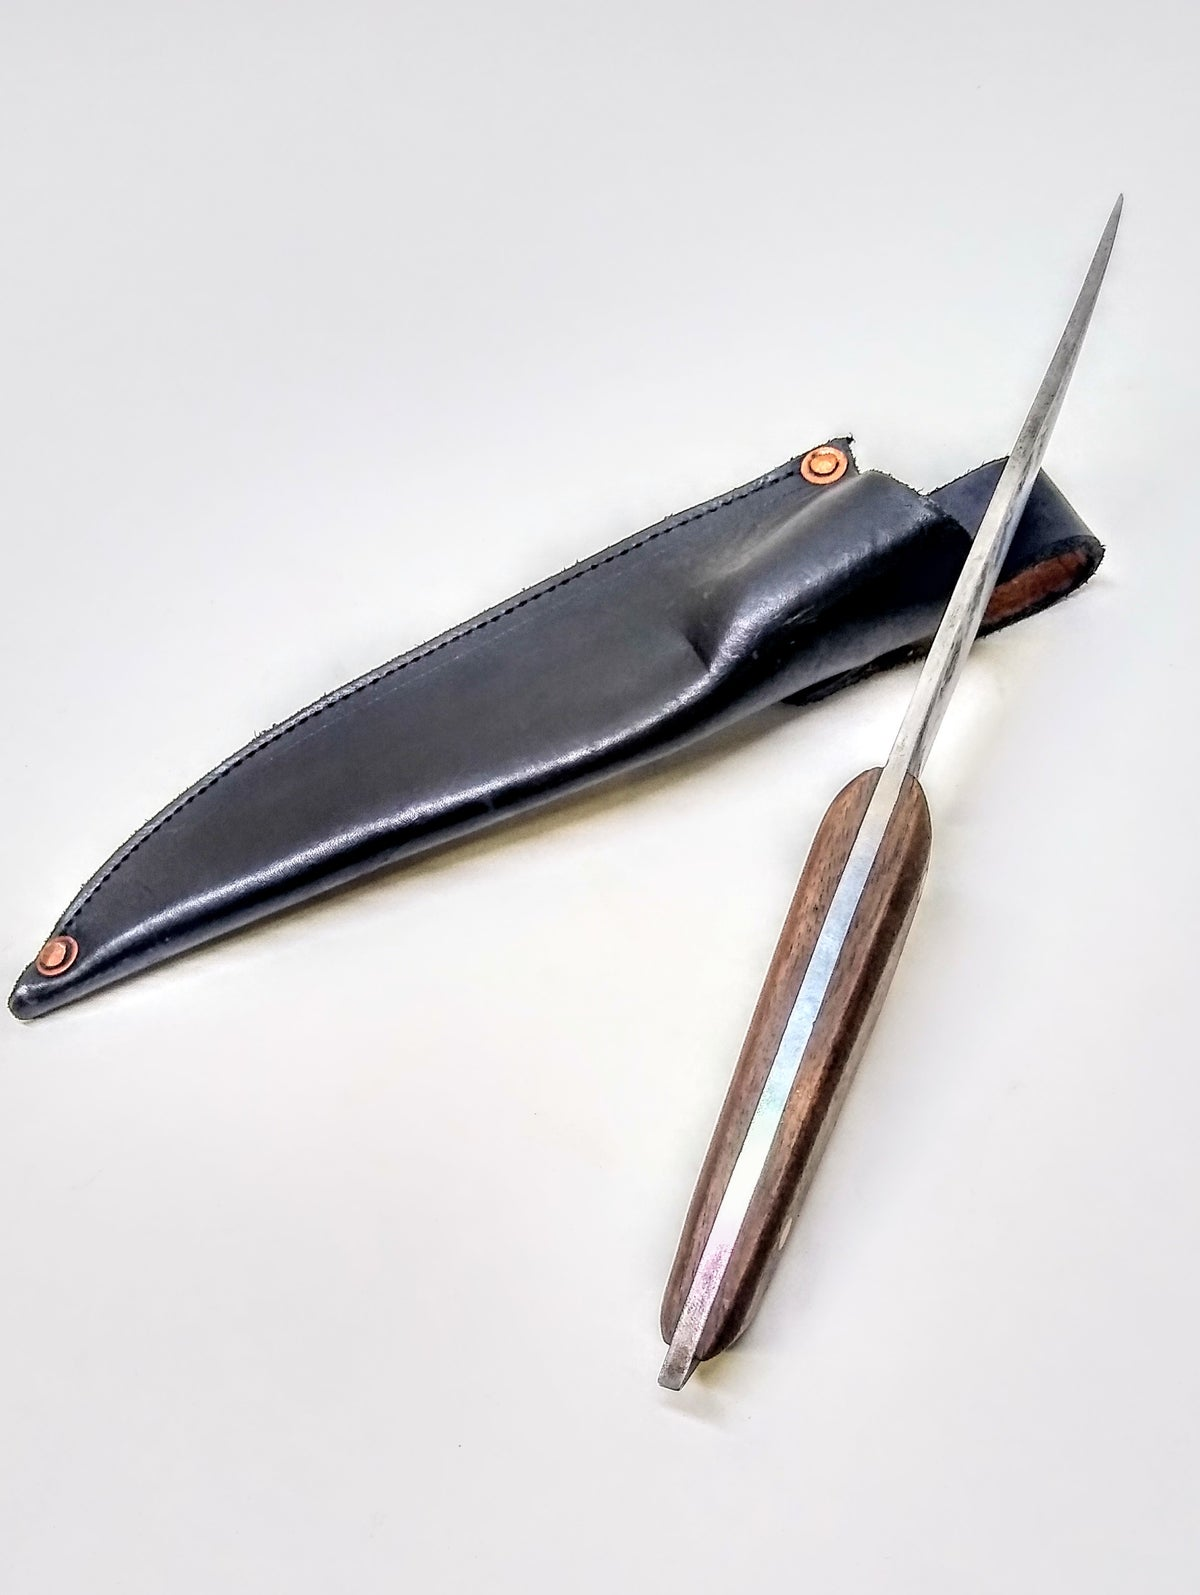 Image of High carbon steel blade and sheath